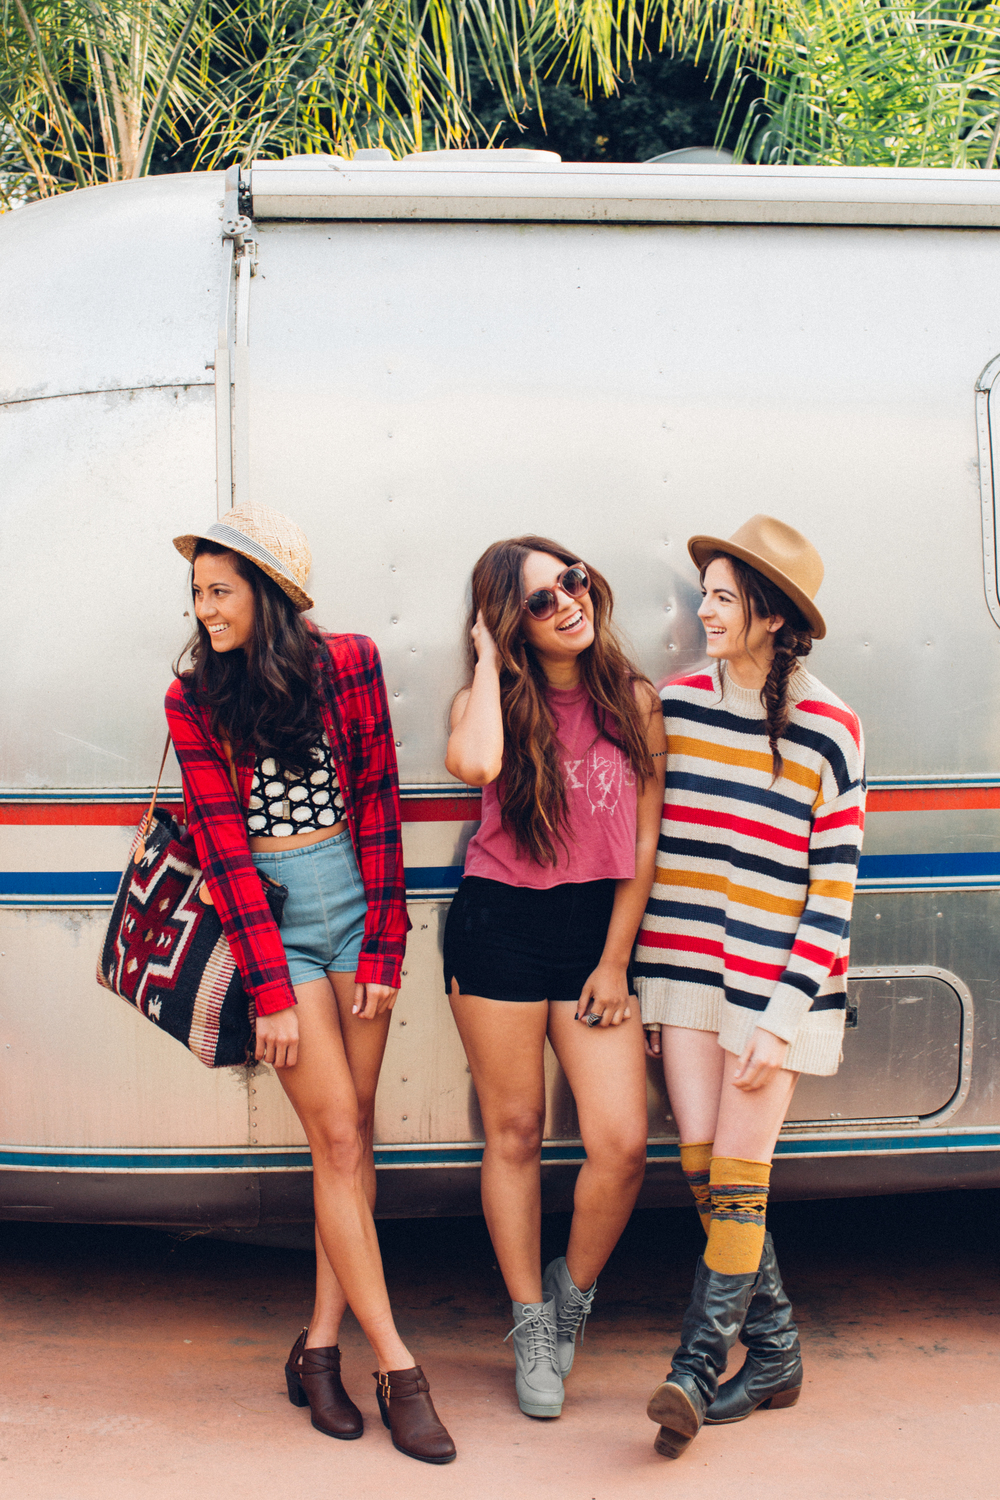 Urban Outfitters Airstream Long Beach Backyard Photoshoot by The Finches